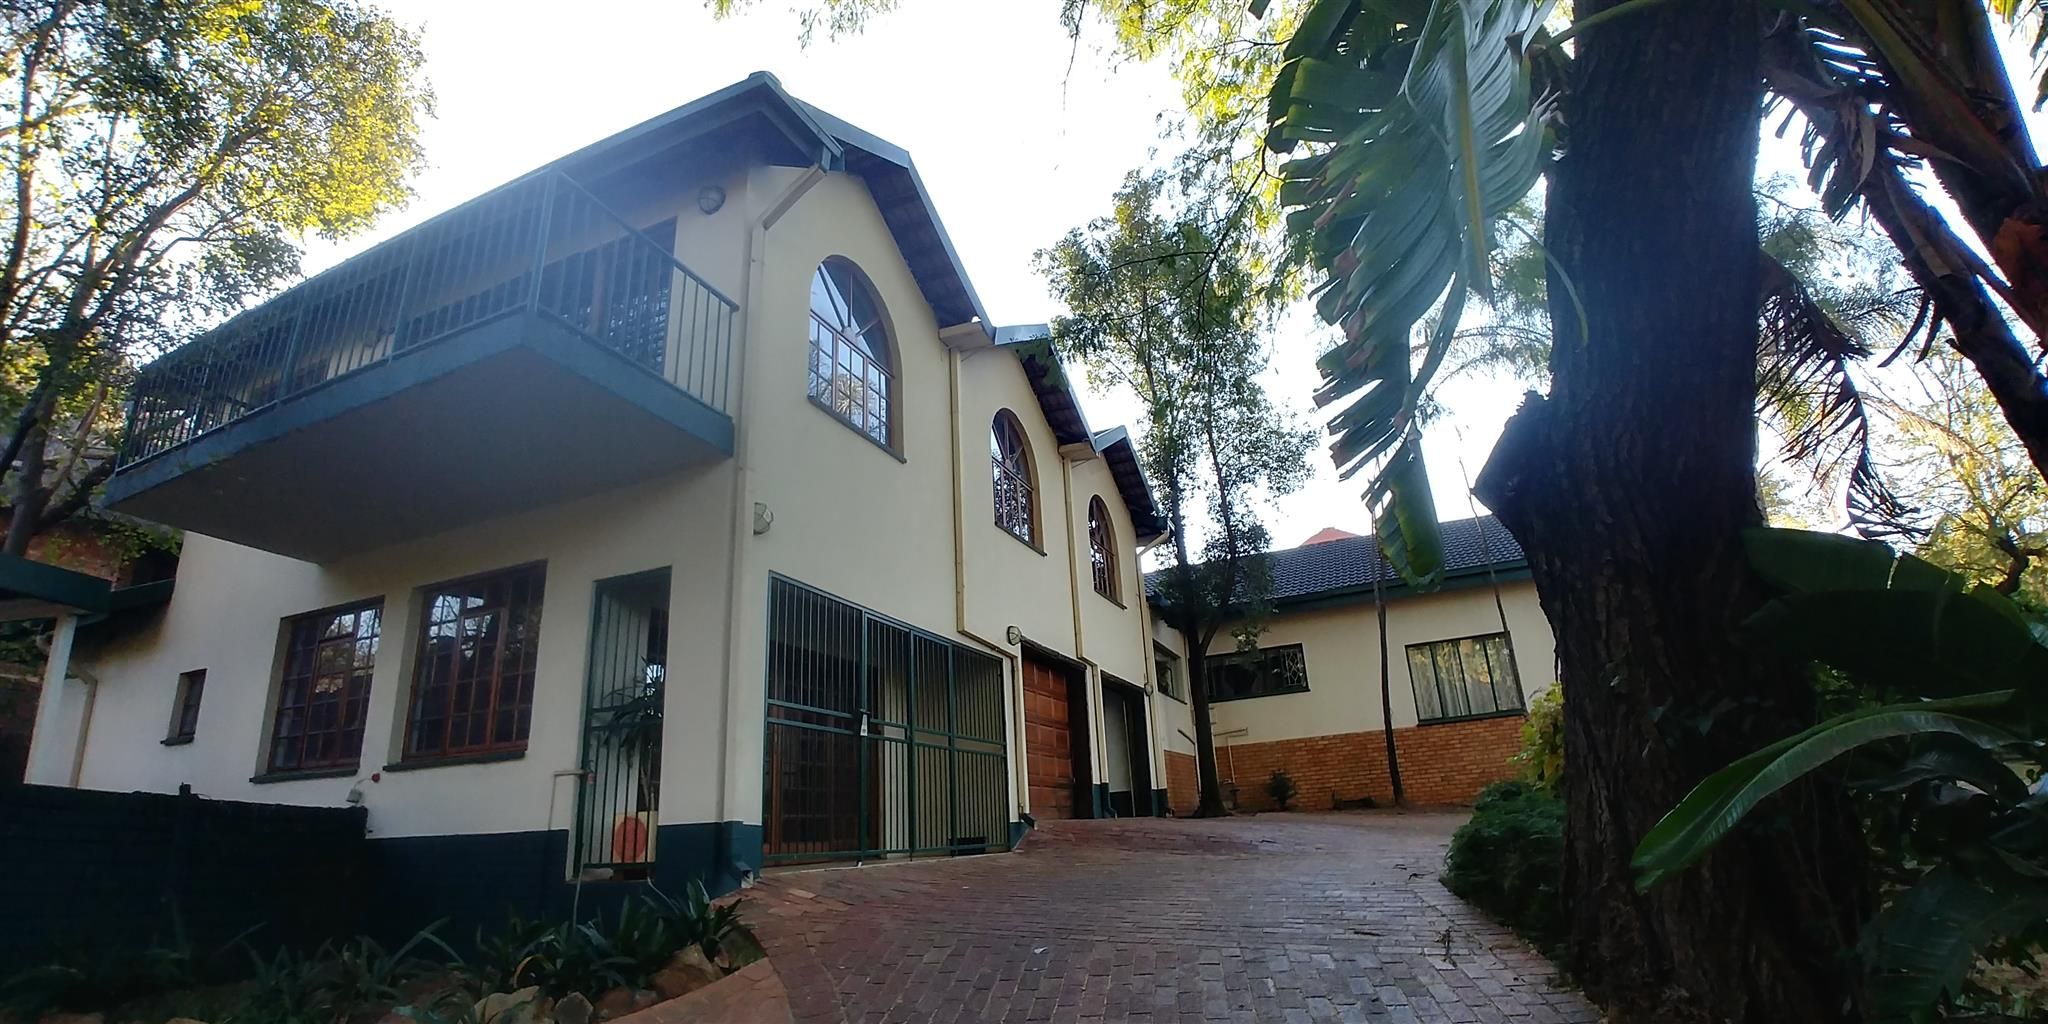 Rooms available in a spacious shared apartment located in a neat and secure suburb available on 10 December 2019 for R2,500pm and R2,000pm respectively